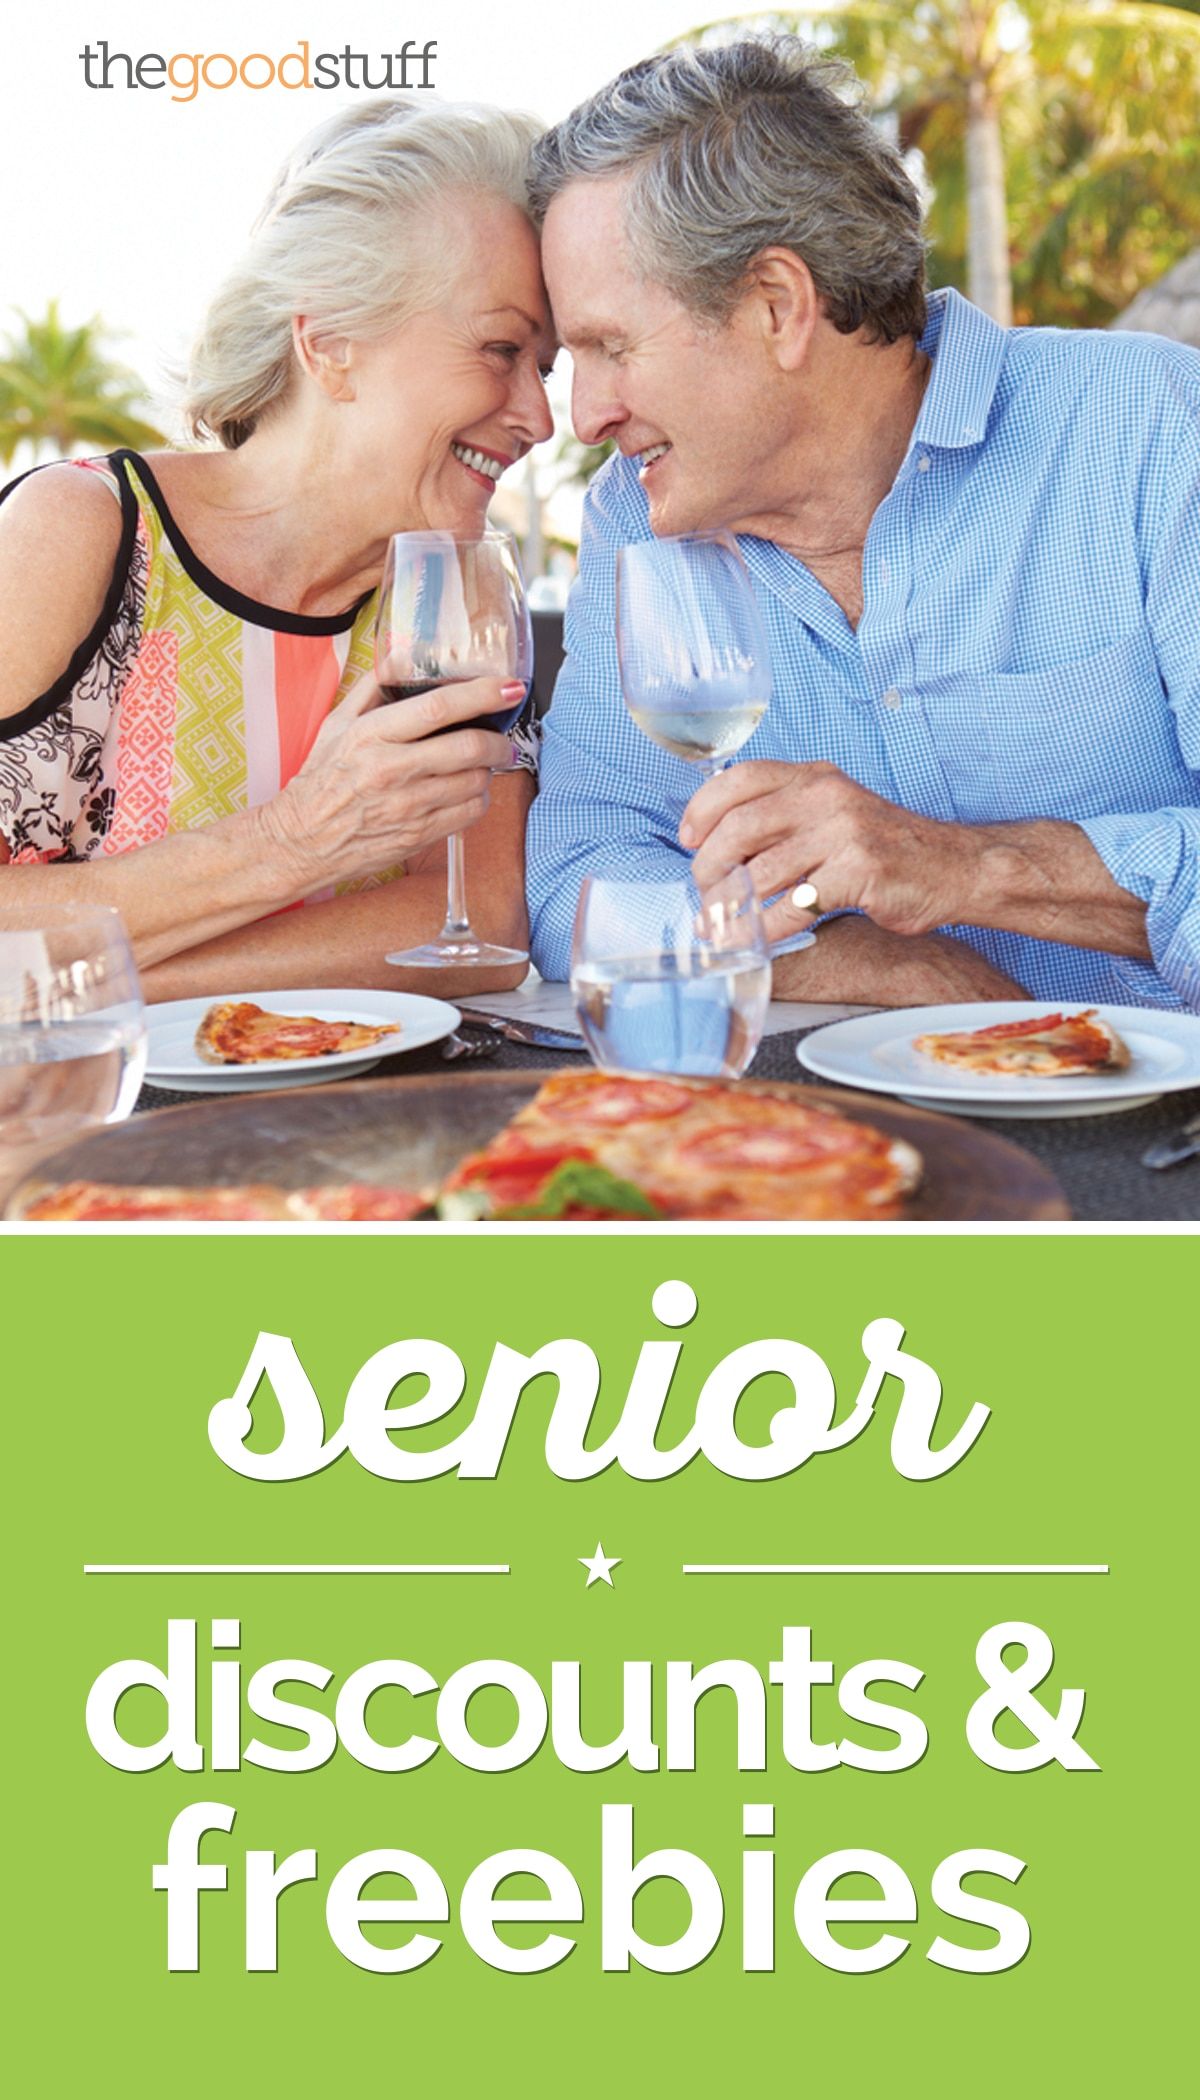 20+ Senior Discounts & Freebies | thegoodstuff